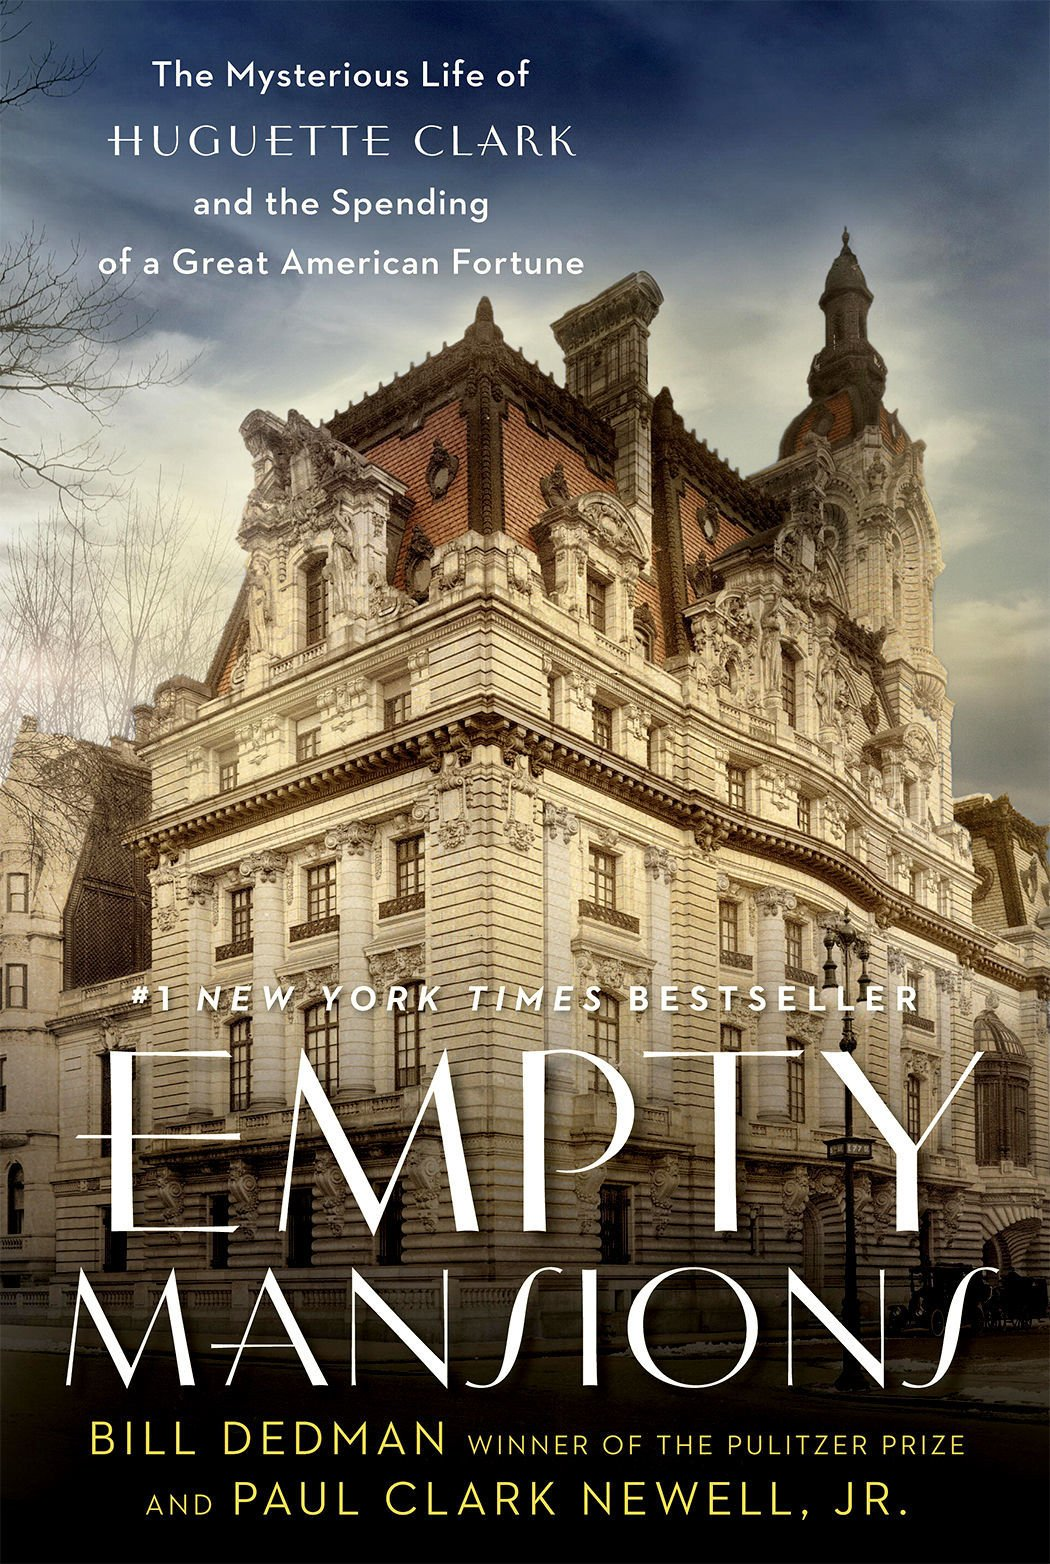 030519 empty mansions book cover.jpg